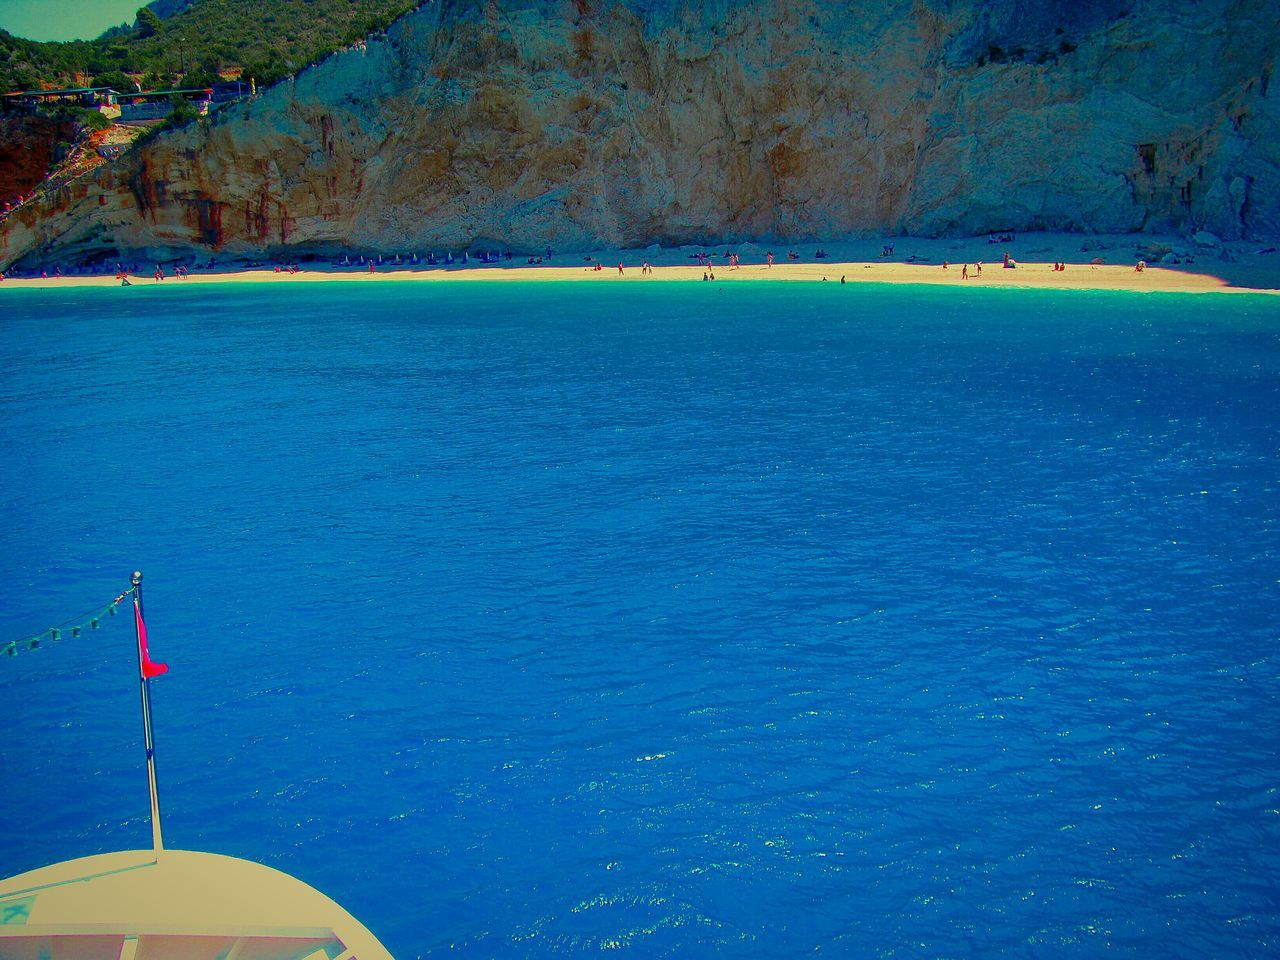 Light And Reflection Summer Light Sea Reflections Water Blue Outdoors Nature Scenics Beauty In Nature Arriving Beach Beach Photography Life Is A Beach Porto Katsiki Beach Lefkada Island Greek Islands Crystal Clear Waters Turquoise Water Shades Of Blue Blue Sea Cliff Steep Cliff Rock Rock Formation